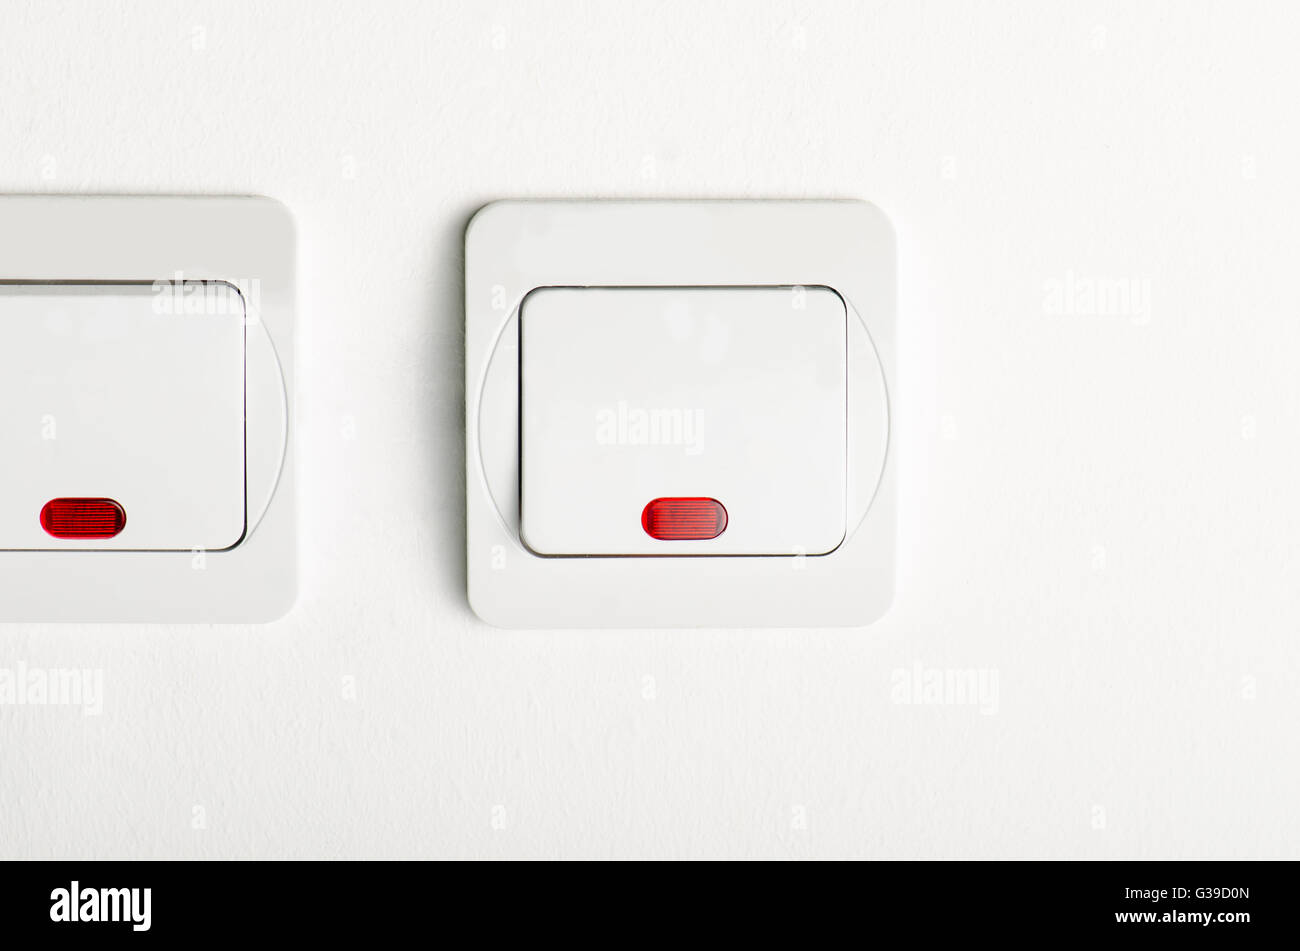 2 White light switch on/off on white wall with red led Stock Photo ... for Red Led Light Texture  11lplpg